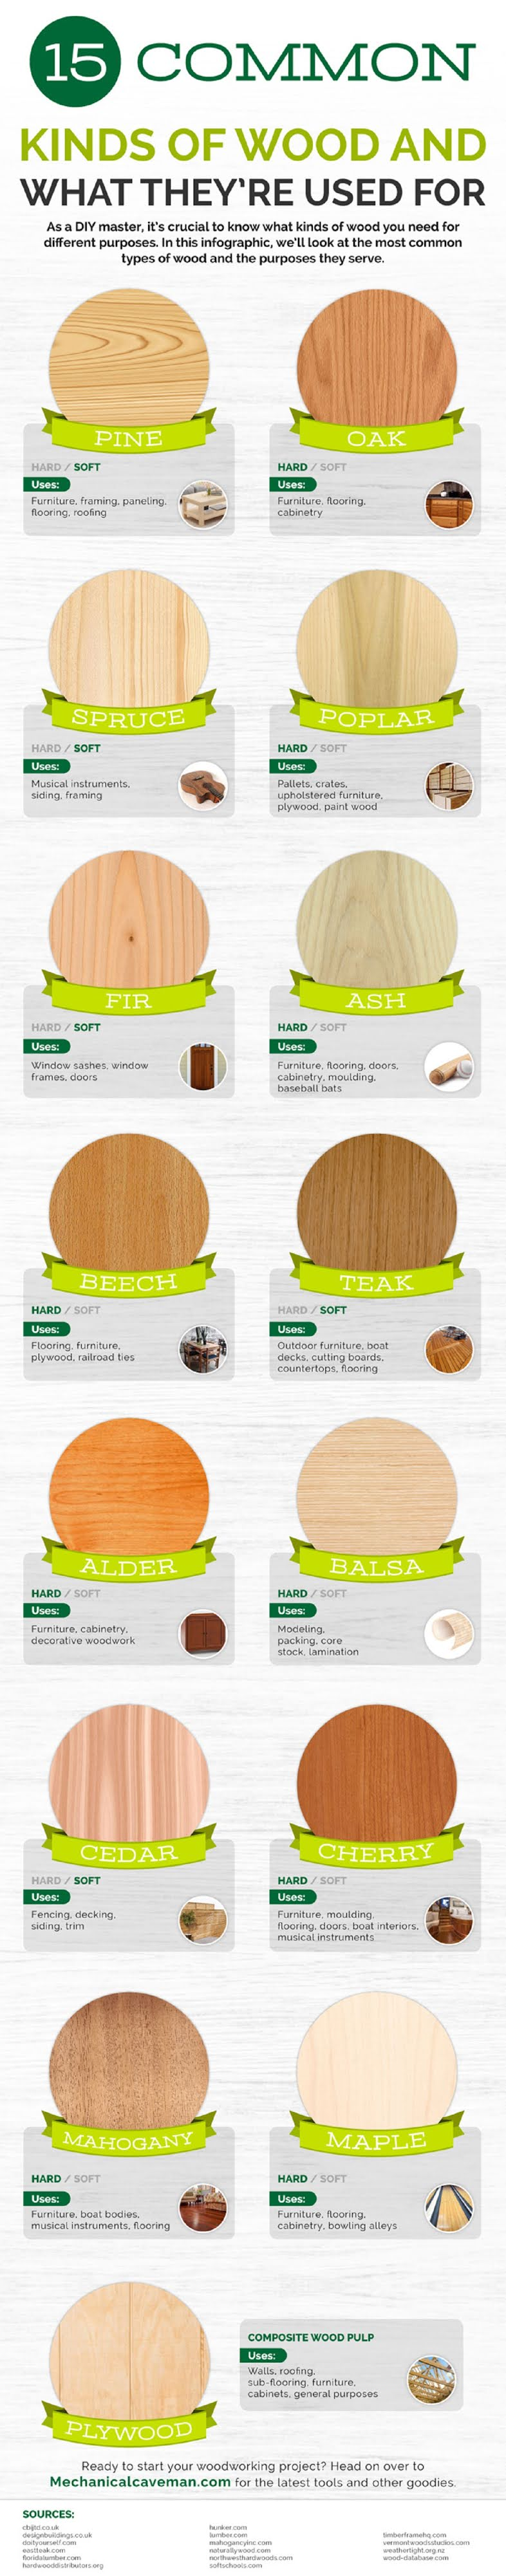 15-common-kinds-of-wood-and-what-theyre-used-for-infographic